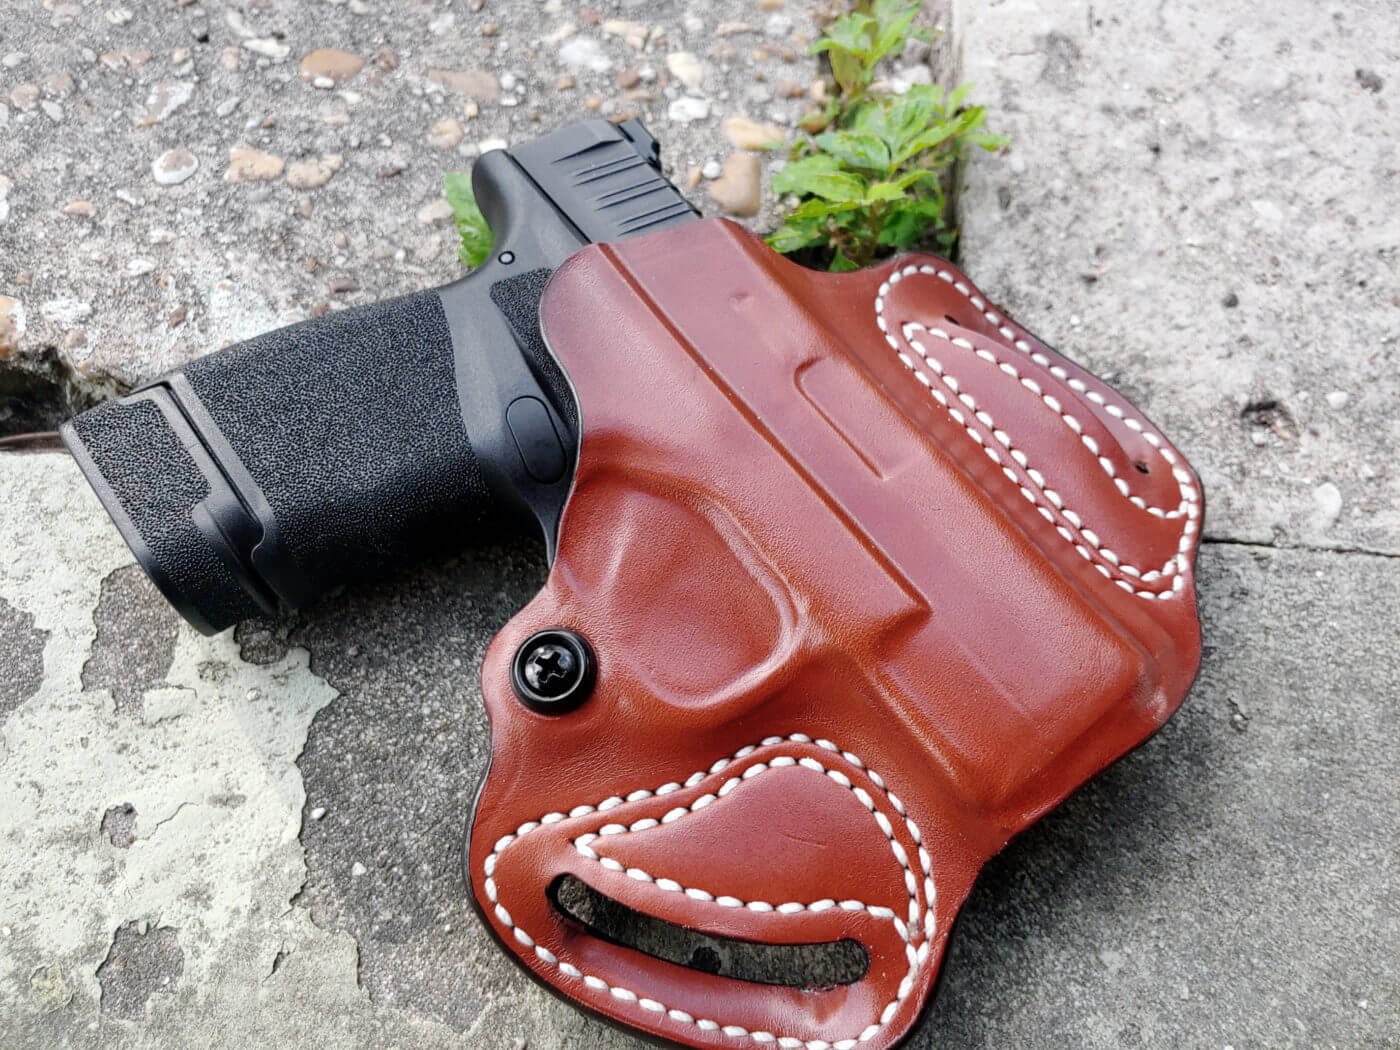 Leather OWB concealed carry holster for the Springfield Hellcat